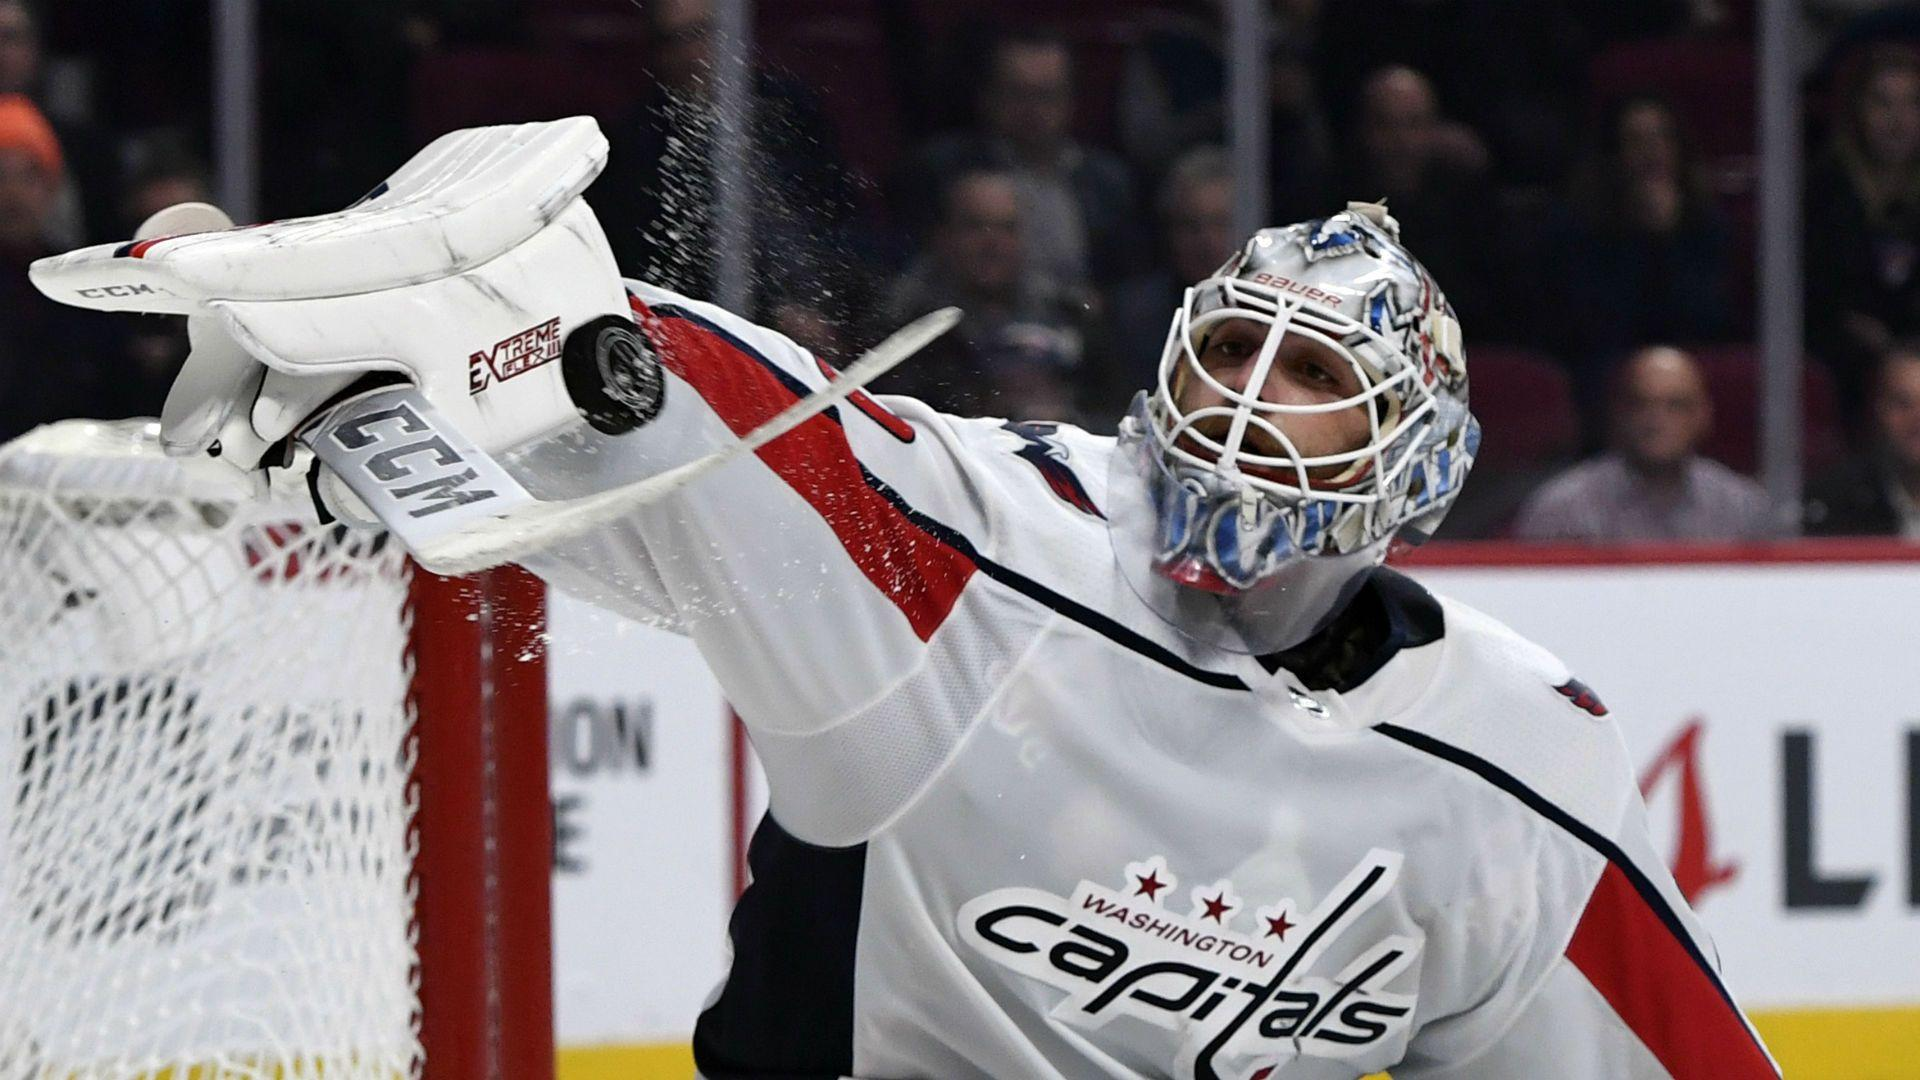 Capitals goalie Braden Holtby recalls bizarre NHL debut on 8